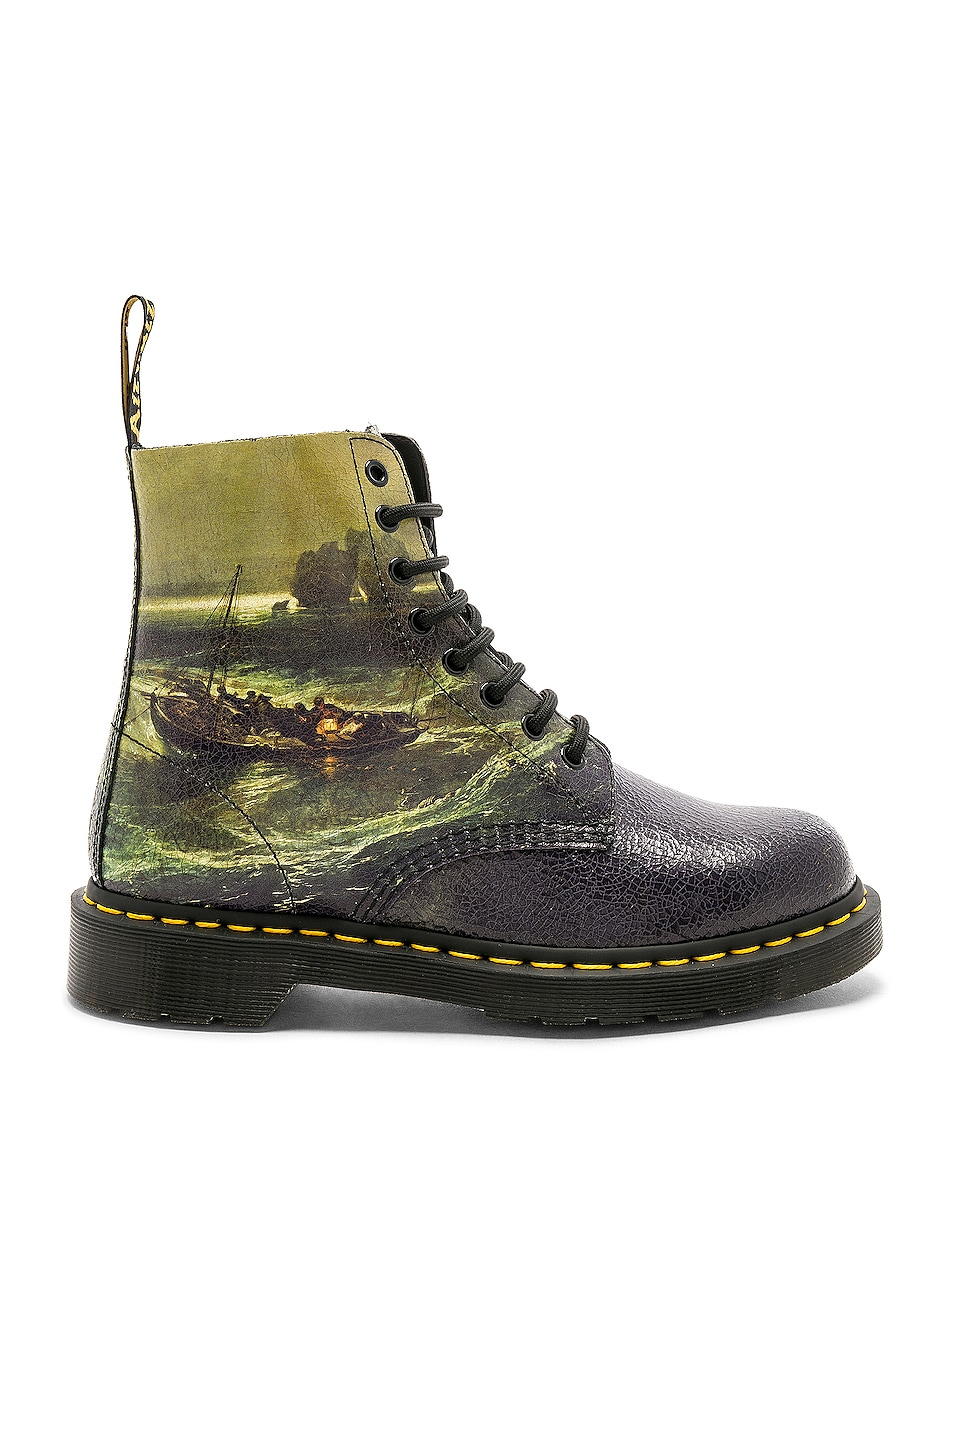 Dr. Martens  DR. MARTENS X TATE BRITAIN CRISTAL BOOTS IN GREEN